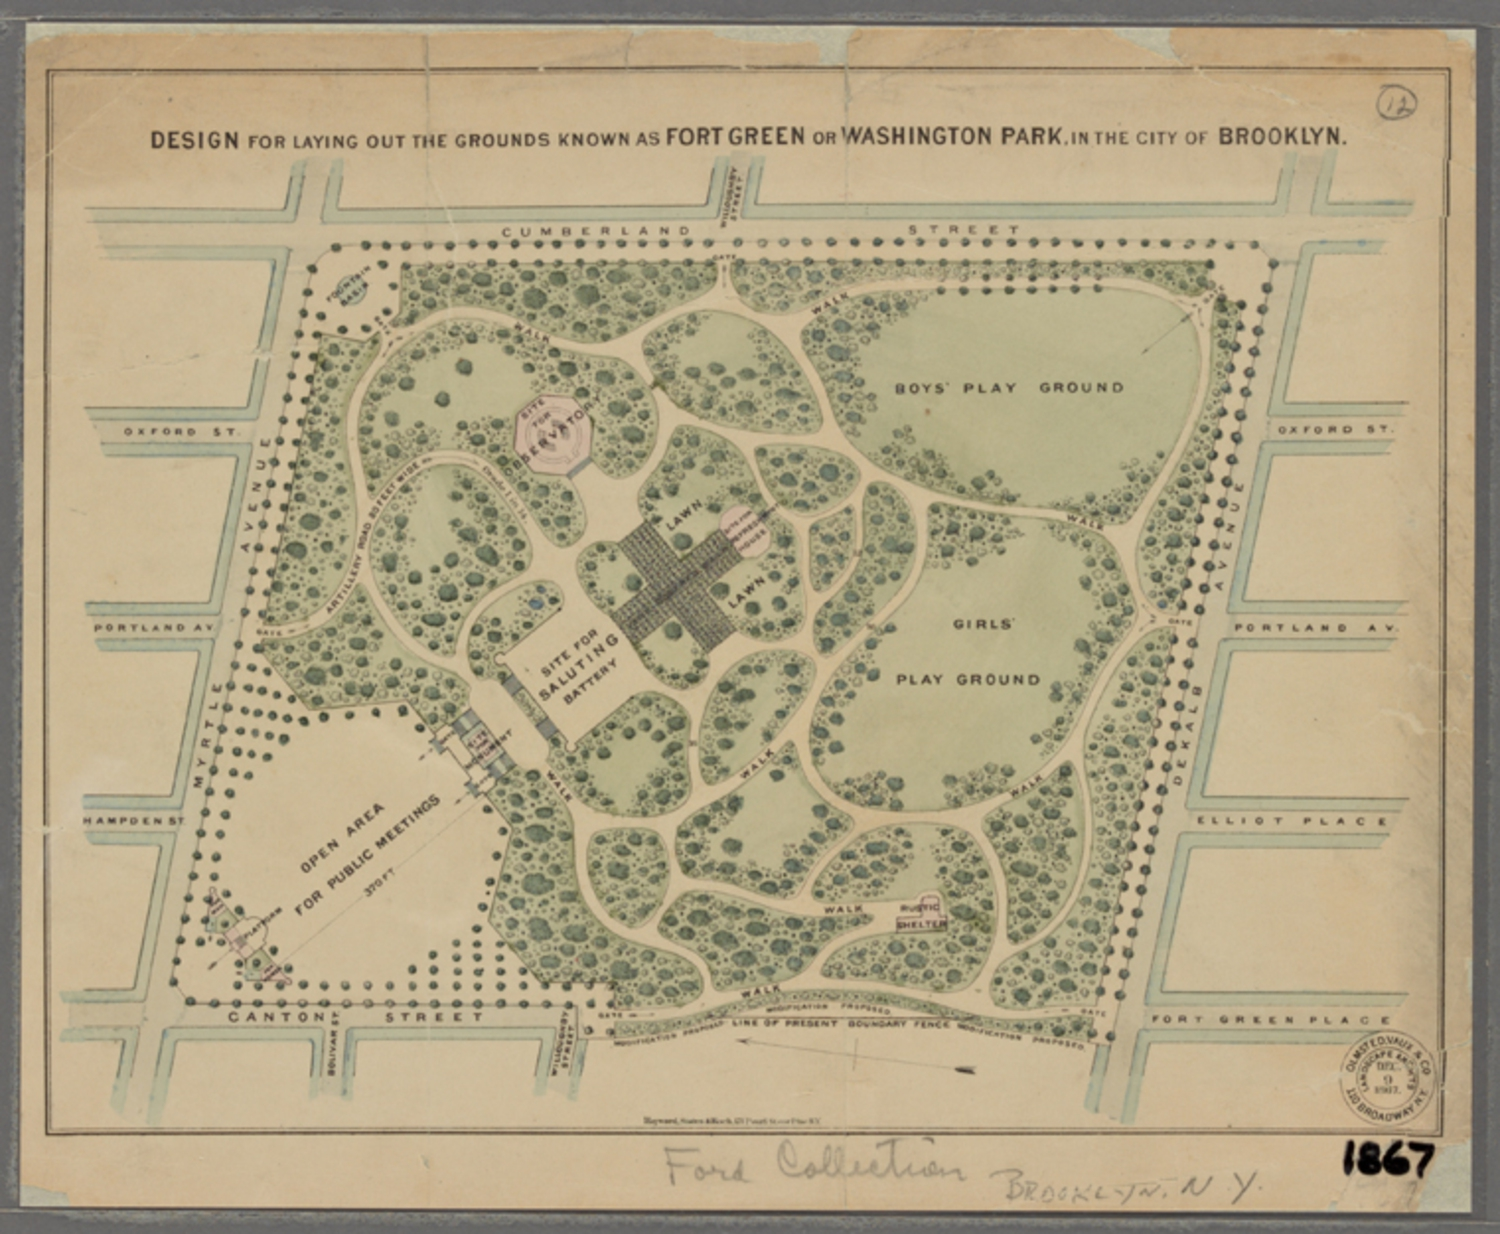 Design for Laying out the Grounds Known as Fort Green or Washington Park, in the City of Brooklyn (1867)